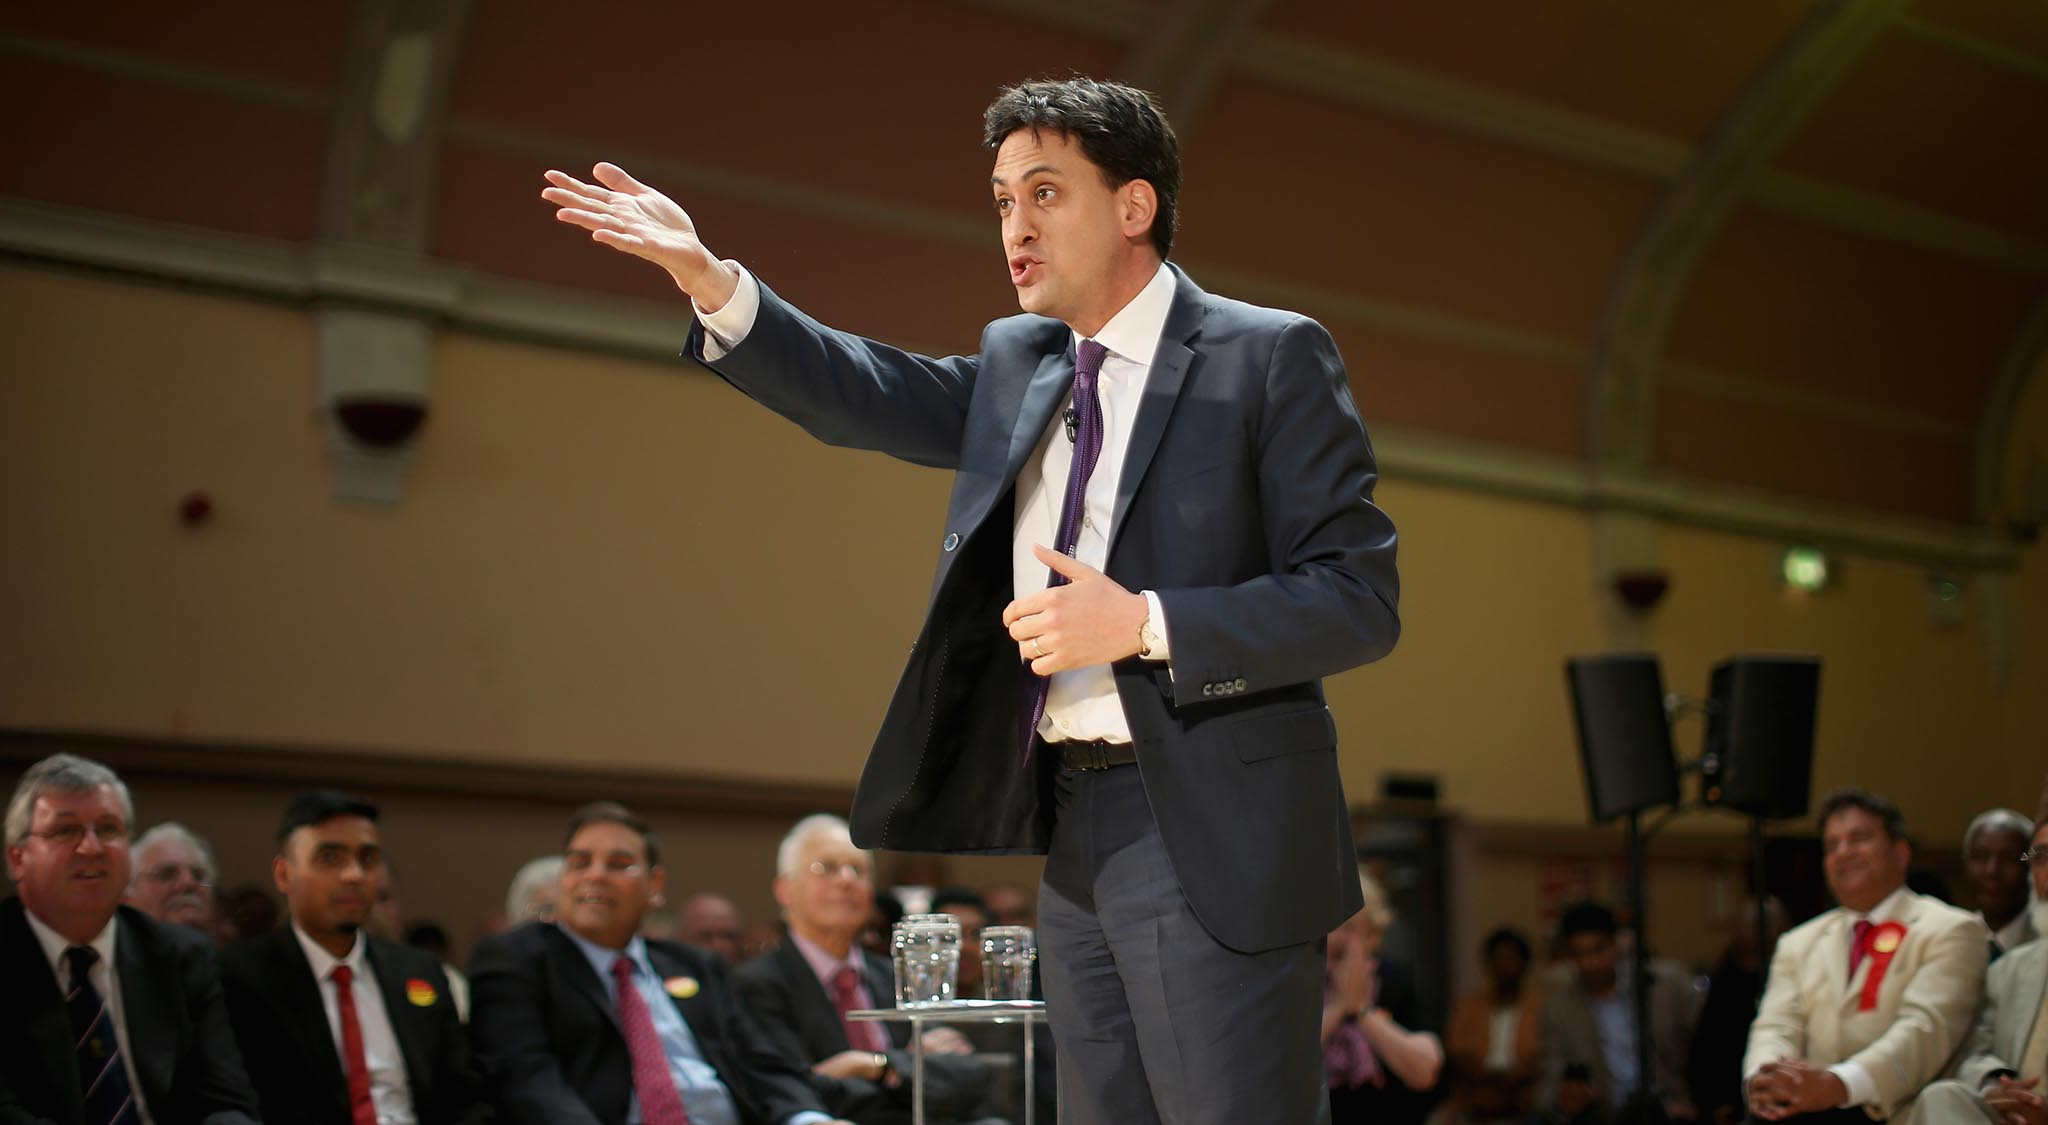 Labour Leader Ed Miliband Announces Minimum Wage Plans